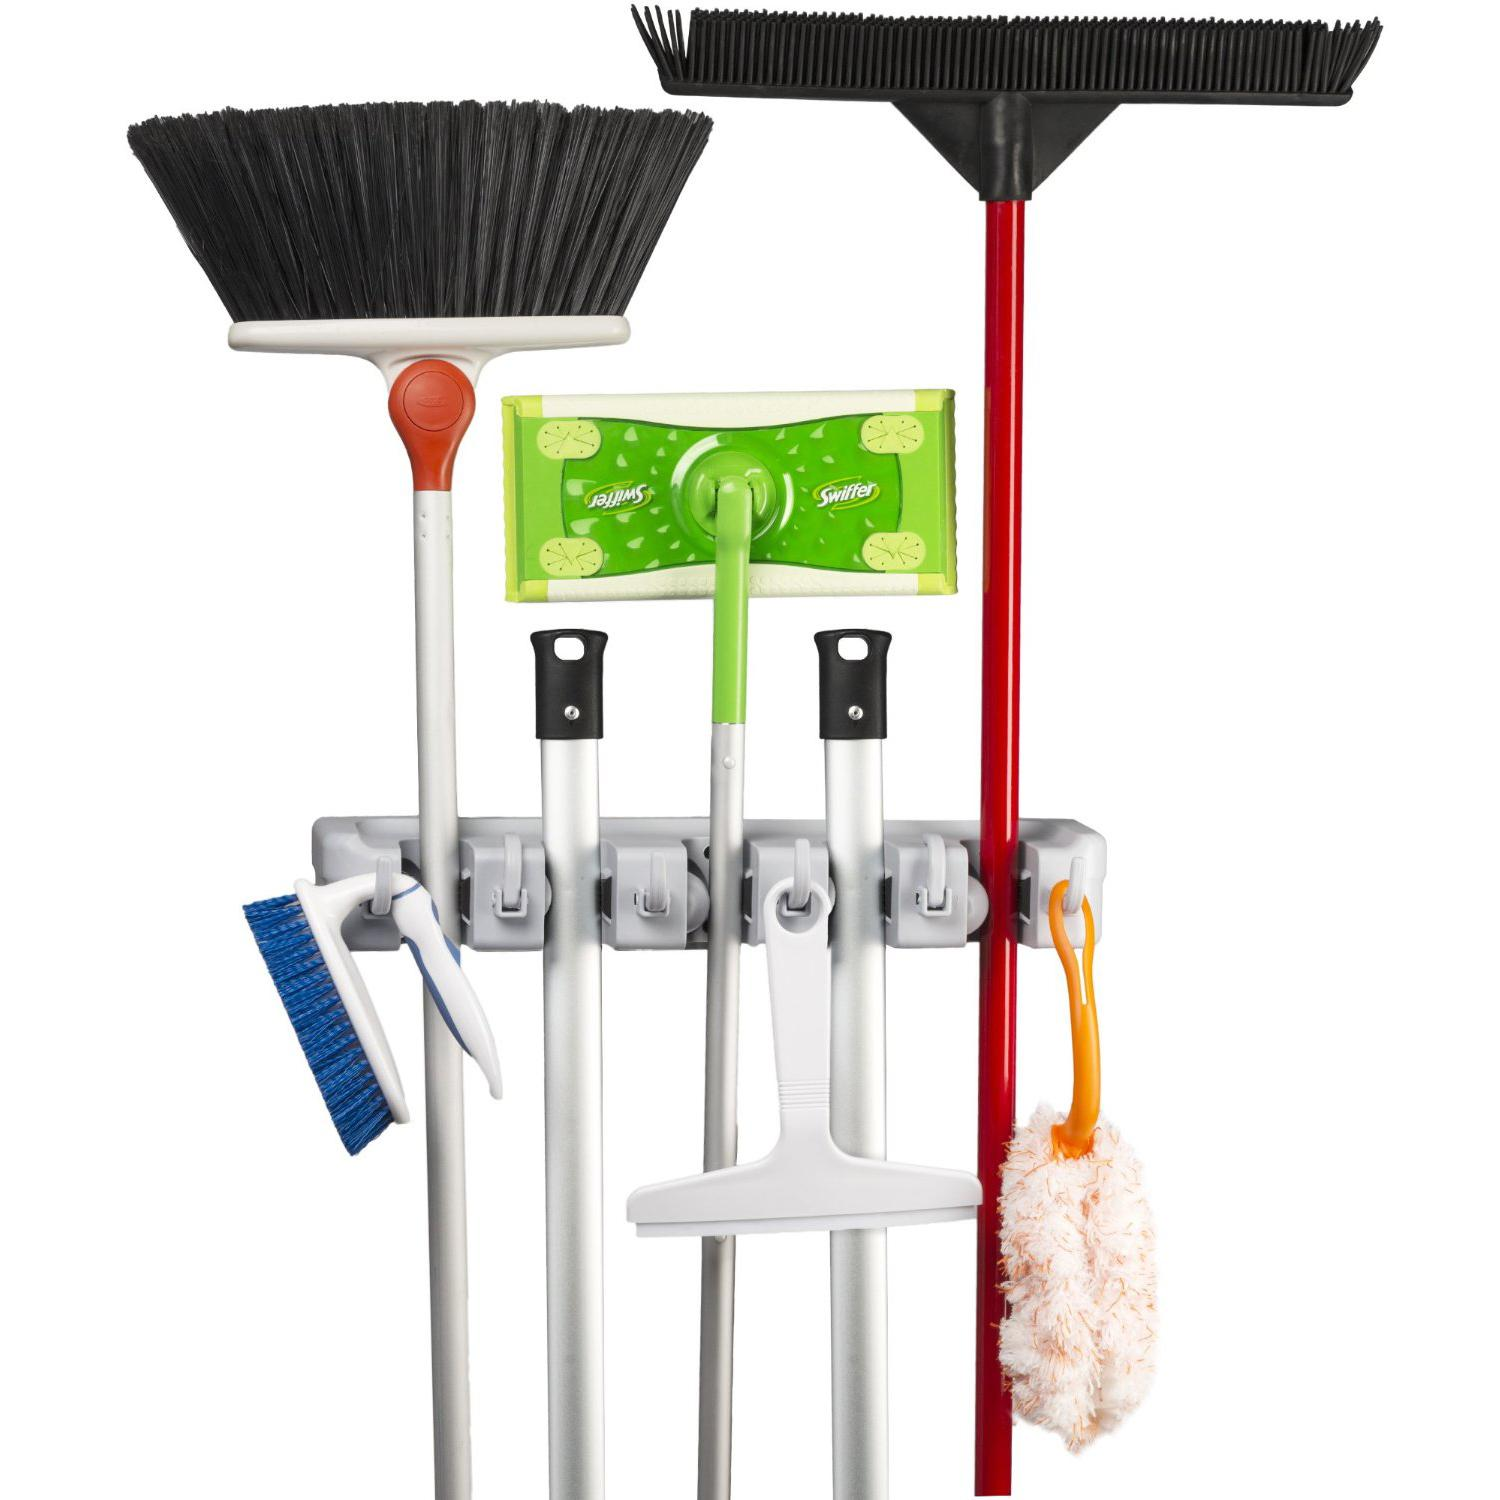 a attachment cleaning broom thatus closet create trends organization tip out rhpinterestcom u organizer and aboutrhgreenlifeathenscom storage